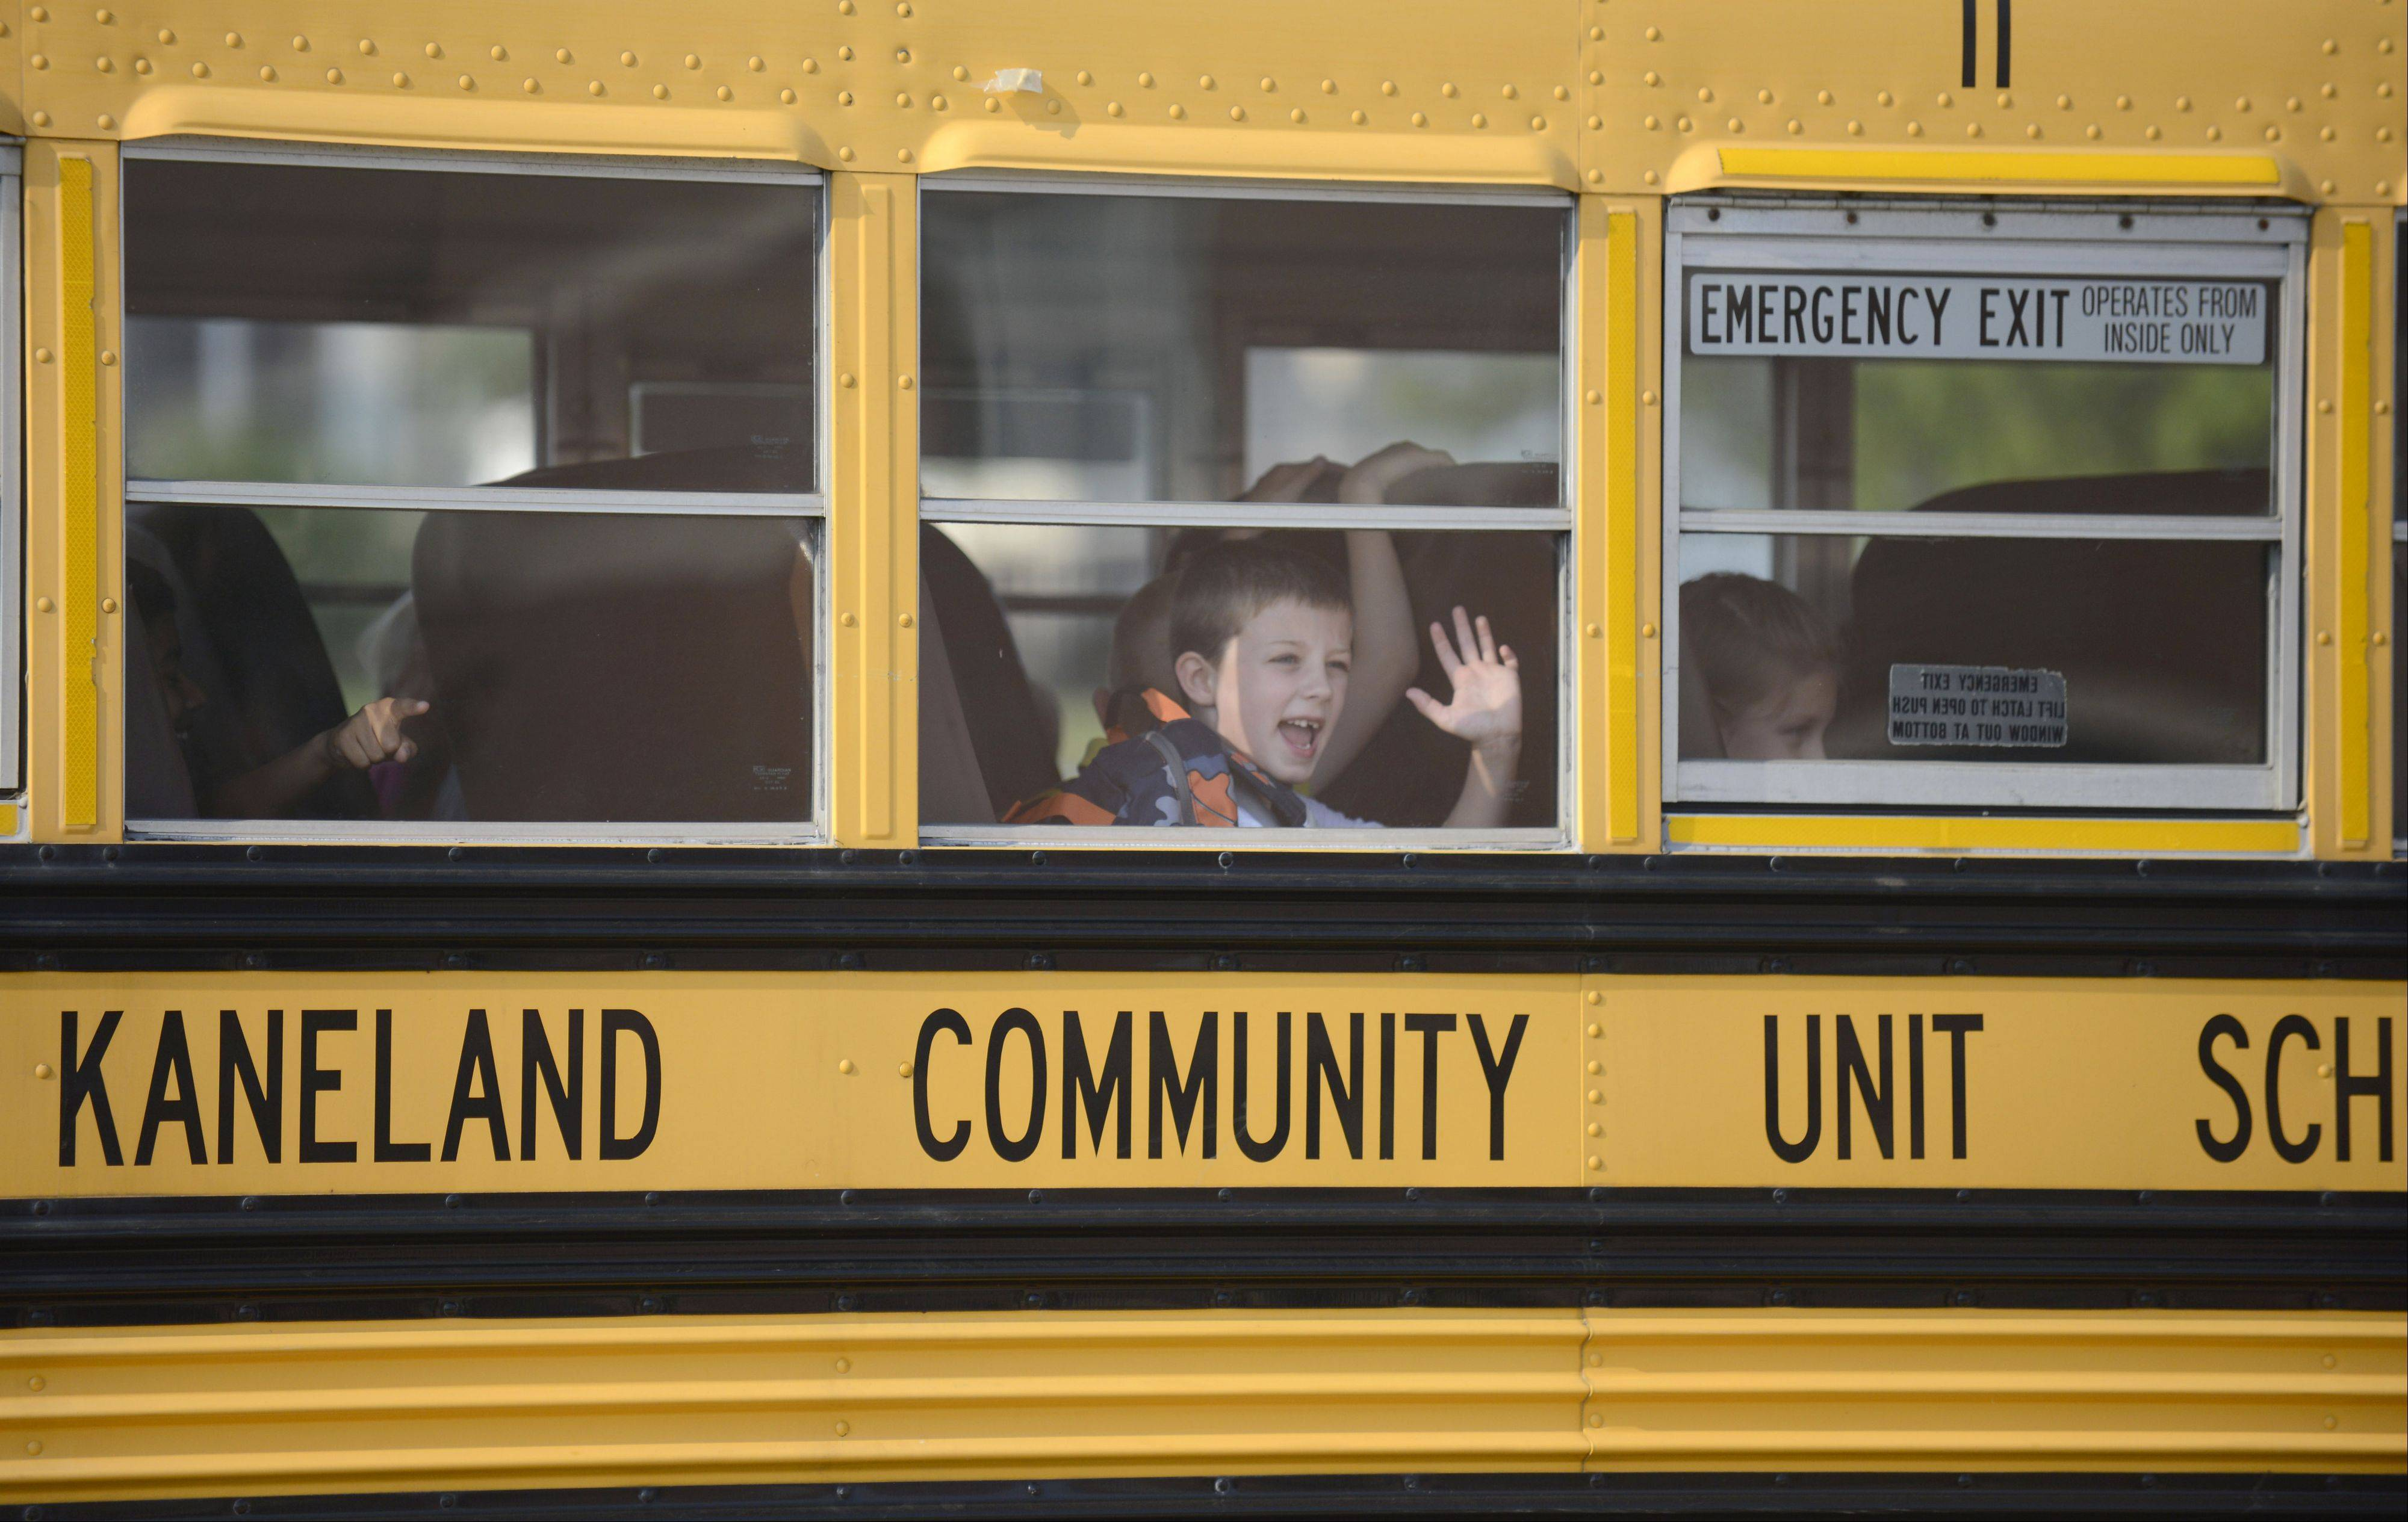 Blake Hansen, 7, waves to his parents Natalie and John as he arrives via bus at Kaneland Blackberry Creek Elementary School for the first day on Wednesday. Blake's parents met him as he got off the bus and saw him off to school.